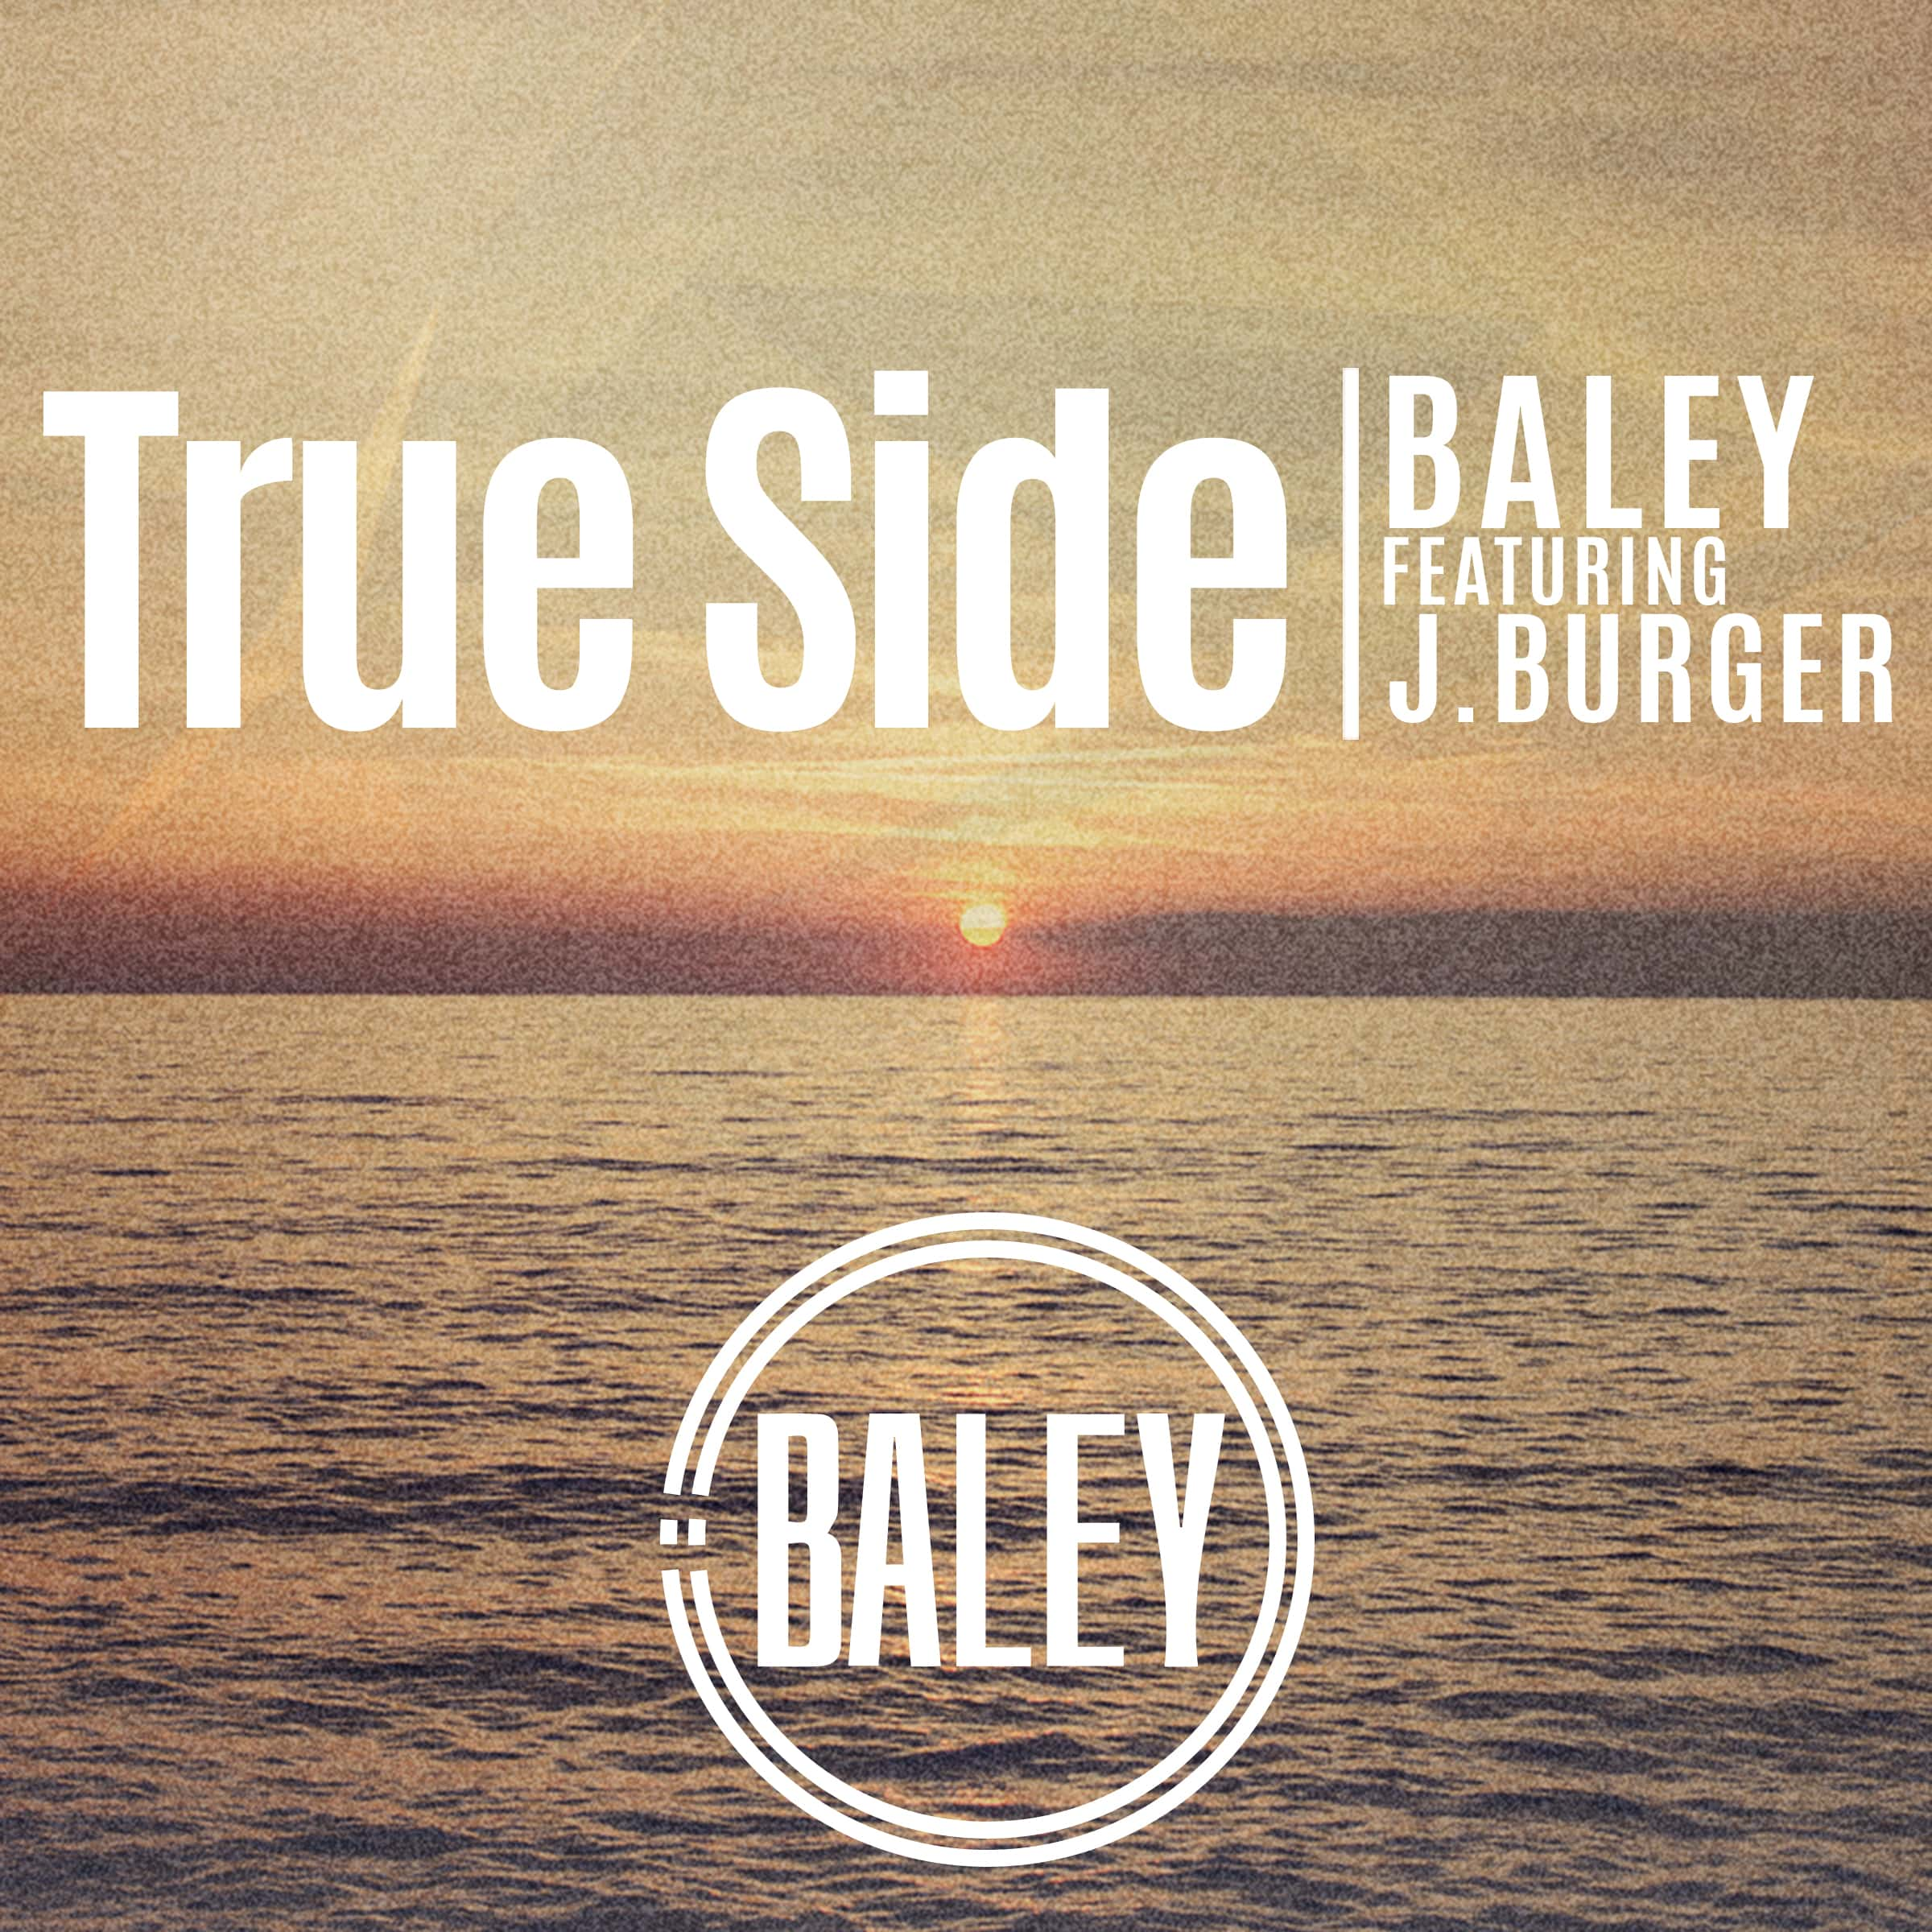 Baley - True Side feat J. Burger